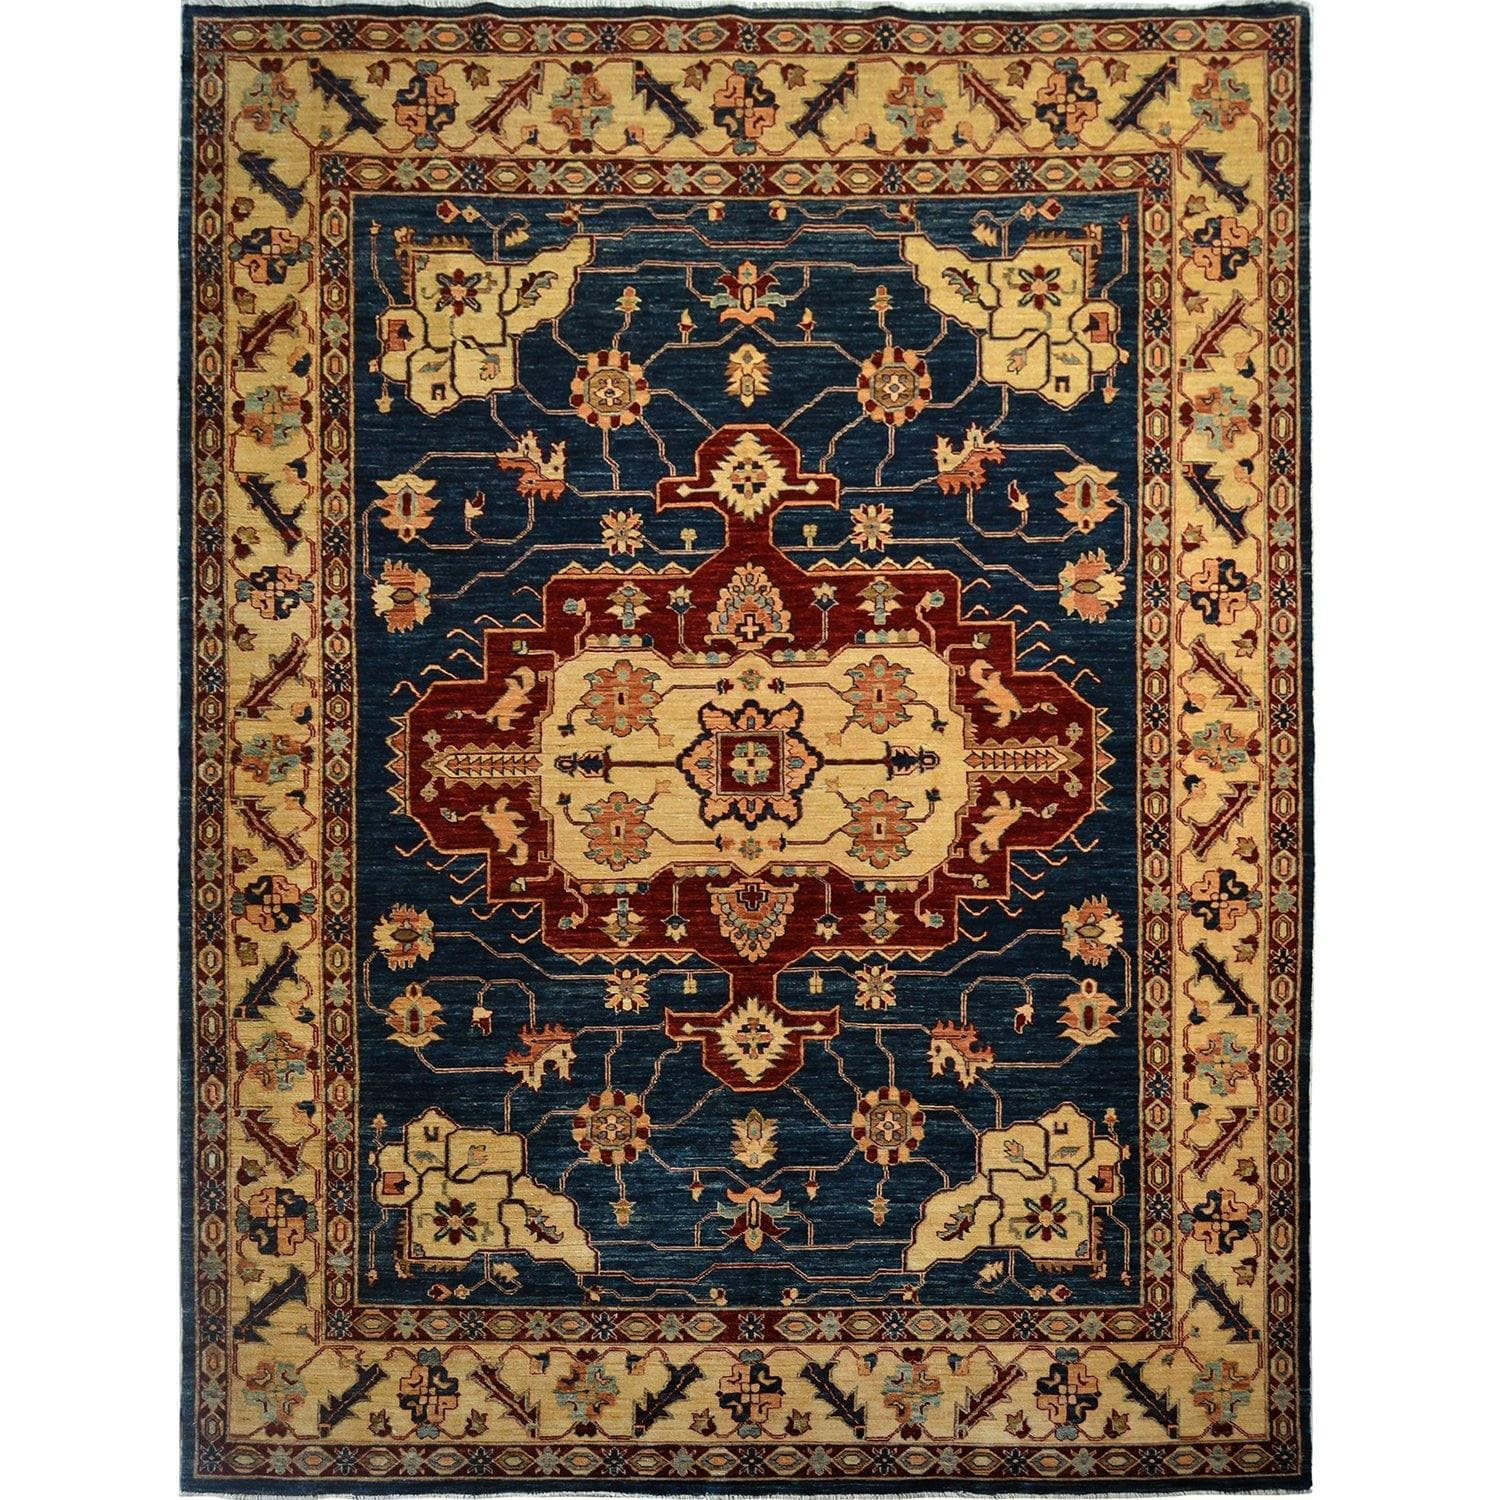 Fine Hand-knotted Heriz Wool Rug 215cm x 305cm Persian-Rug | House-of-Haghi | NewMarket | Auckland | NZ | Handmade Persian Rugs | Hand Knotted Persian Rugs